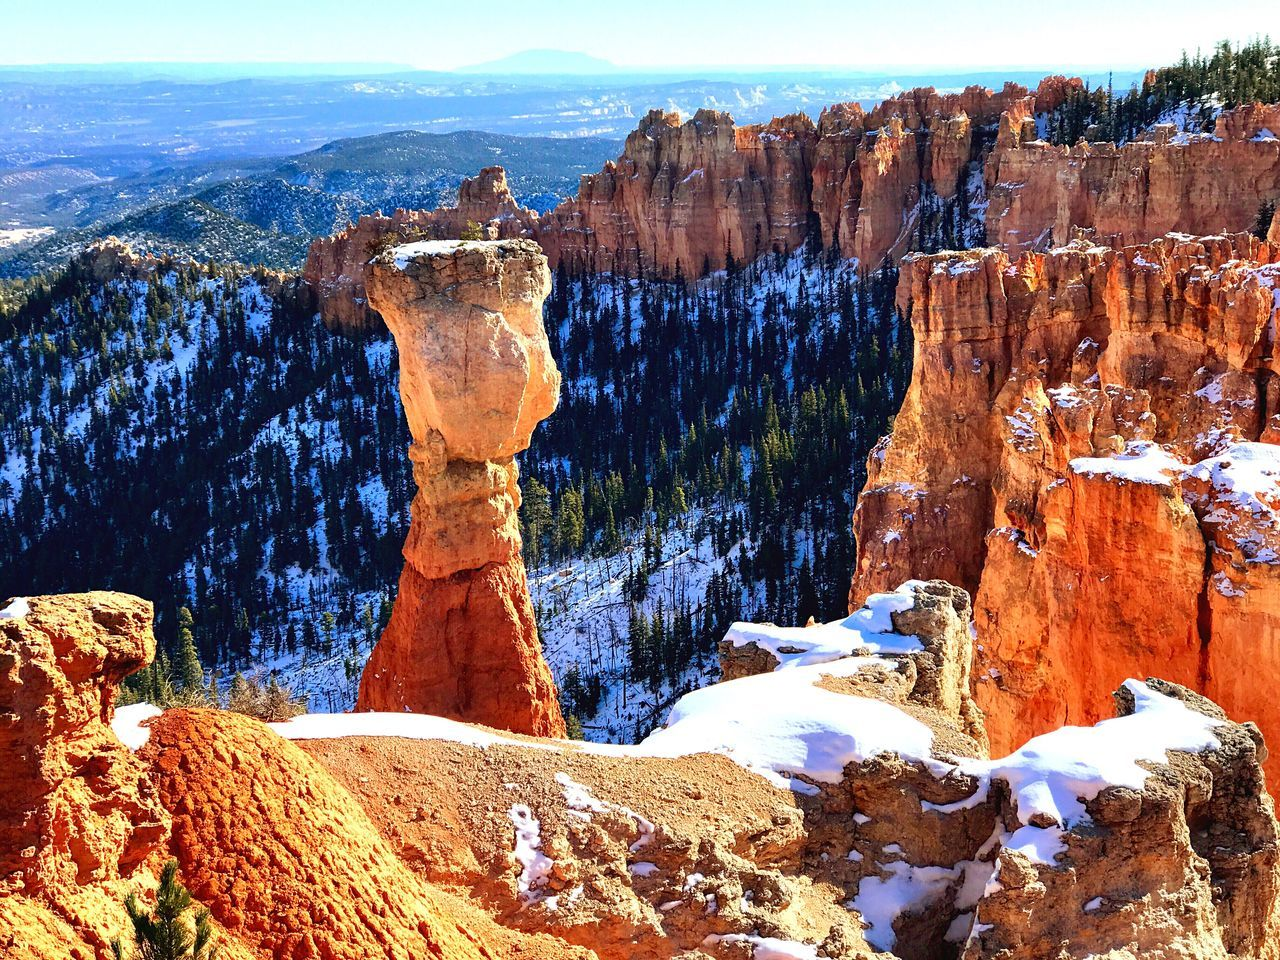 Nature Beauty In Nature Tranquility Scenics Geology Physical Geography Rock - Object Tranquil Scene Sunlight Travel Destinations Non-urban Scene No People Sky Day Outdoors Landscape Water Bryce Canyon National Park Bryce Canyon Bryce National Park Nationalpark USA USAtrip Clear Sky